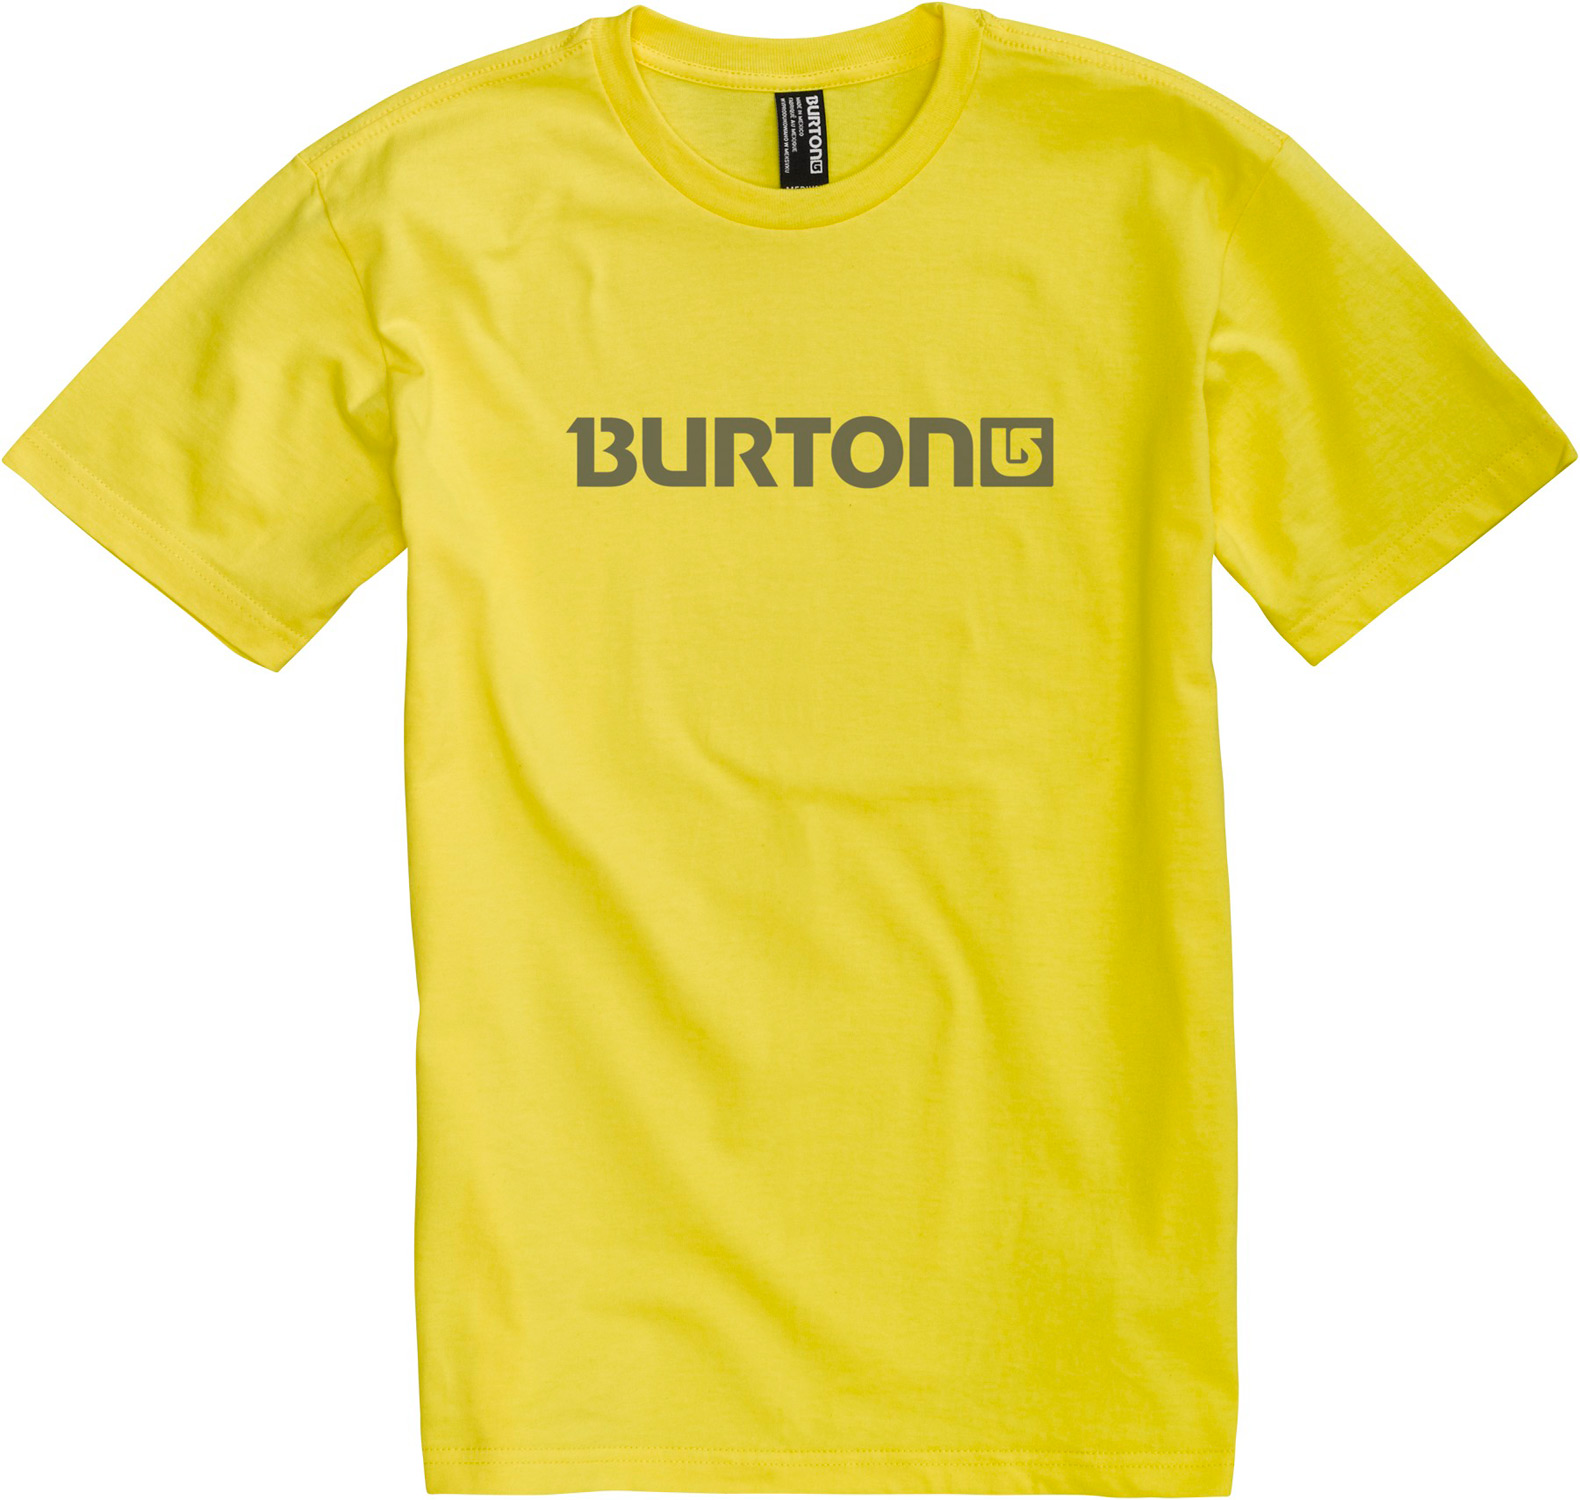 Snowboard Key Features of The Burton Logo Horizontal T-Shirt: Regular Fit Crew Neck Short Sleeve 100% Cotton Regular Fit Screen Print on Front and Back - $12.95